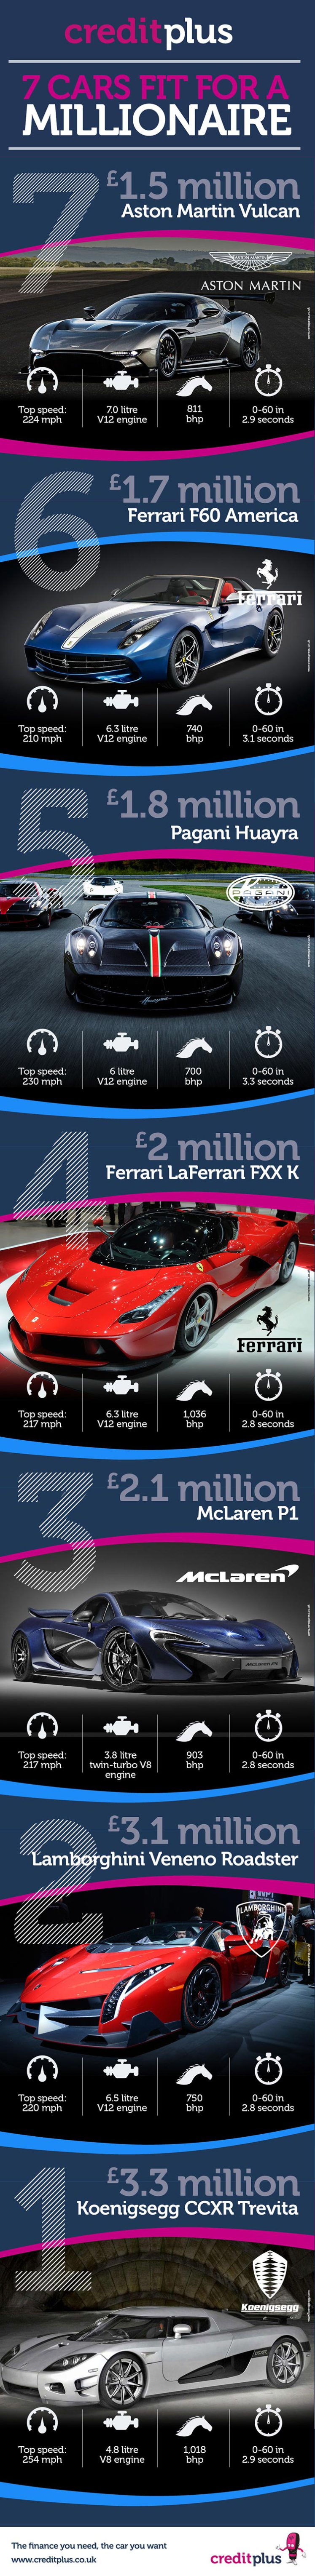 millionaire-day-infographic-blog-version-small-v2jpg